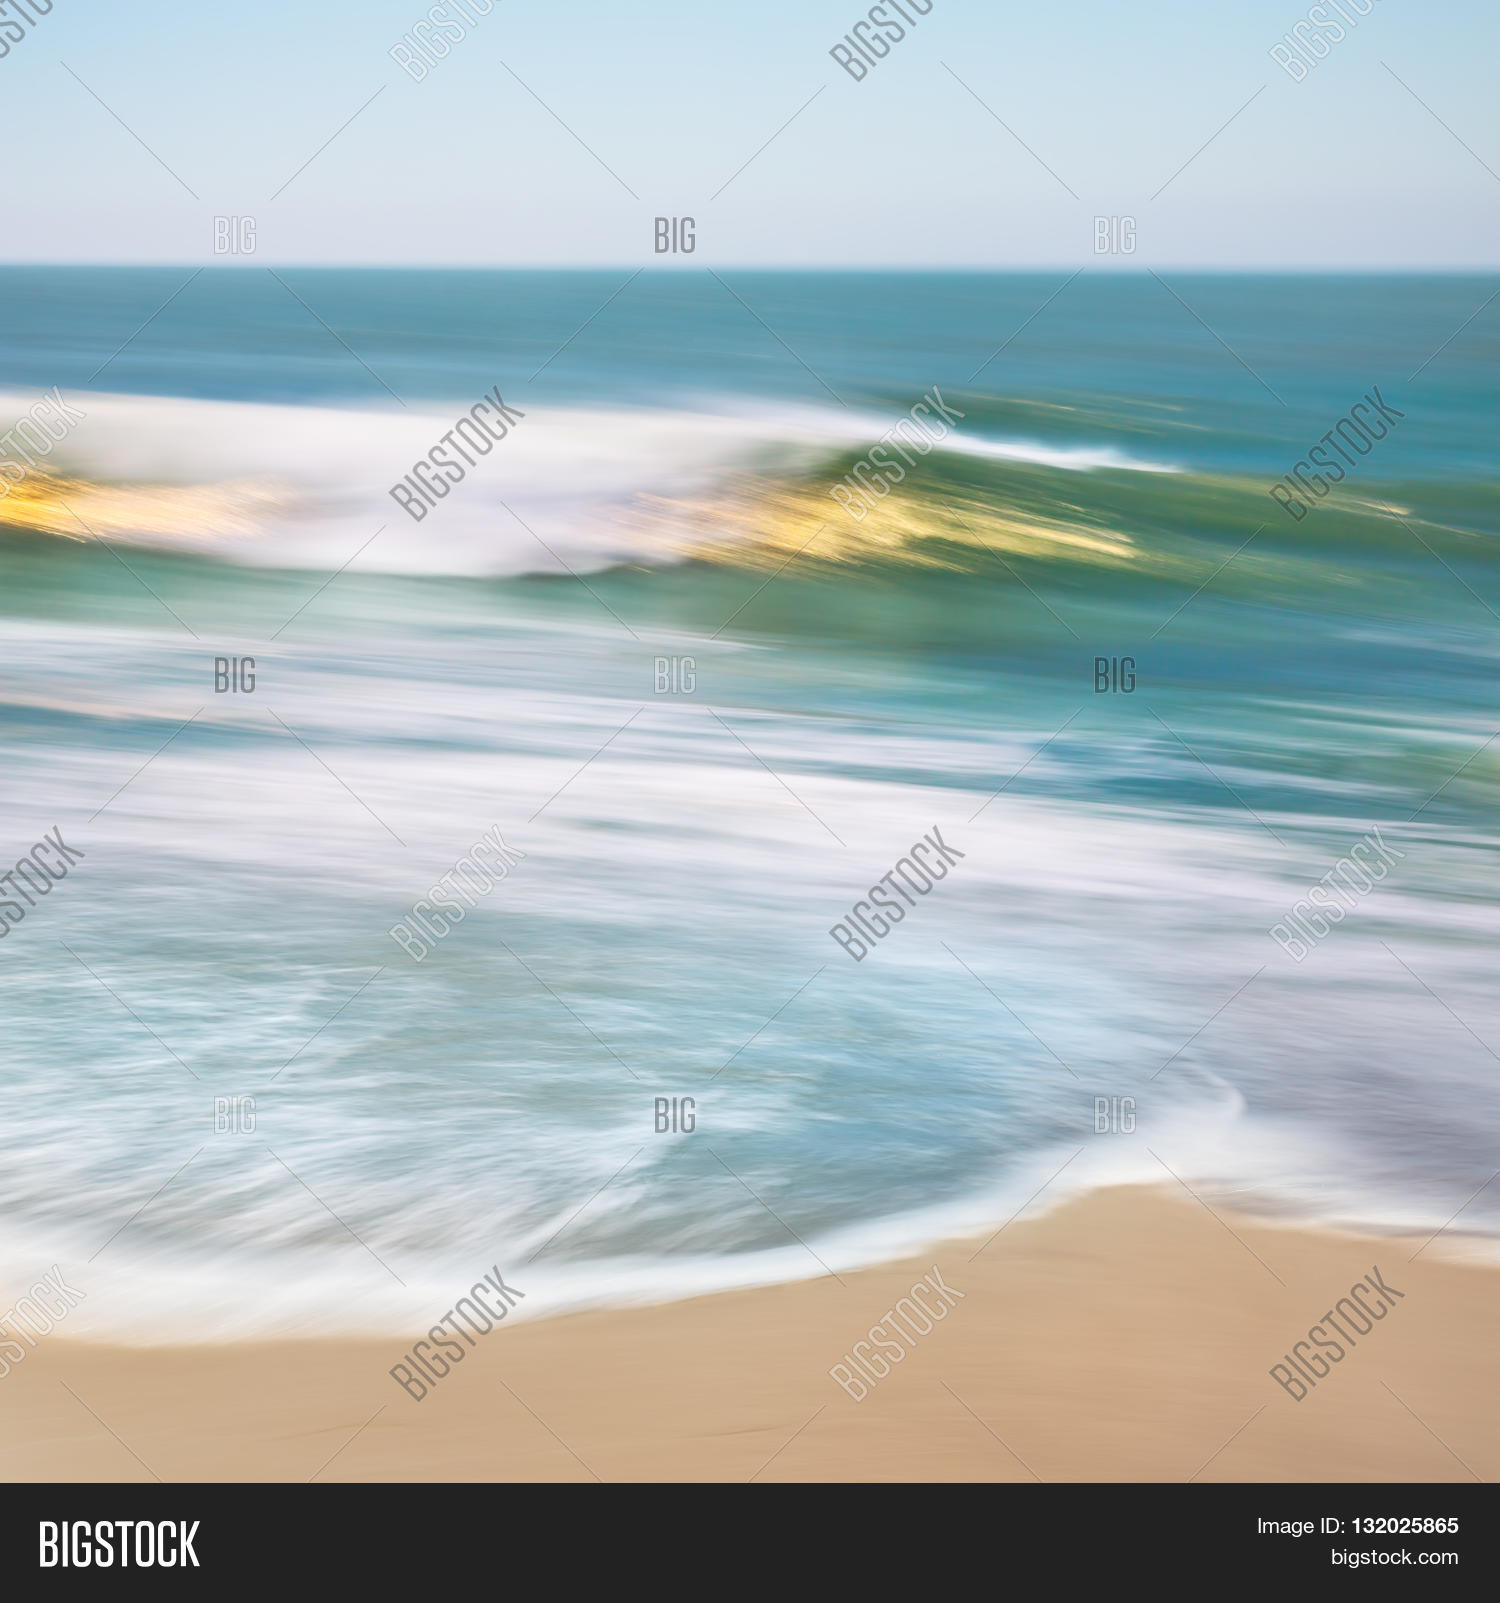 Ocean Wave Blurred Image Photo Free Trial Bigstock